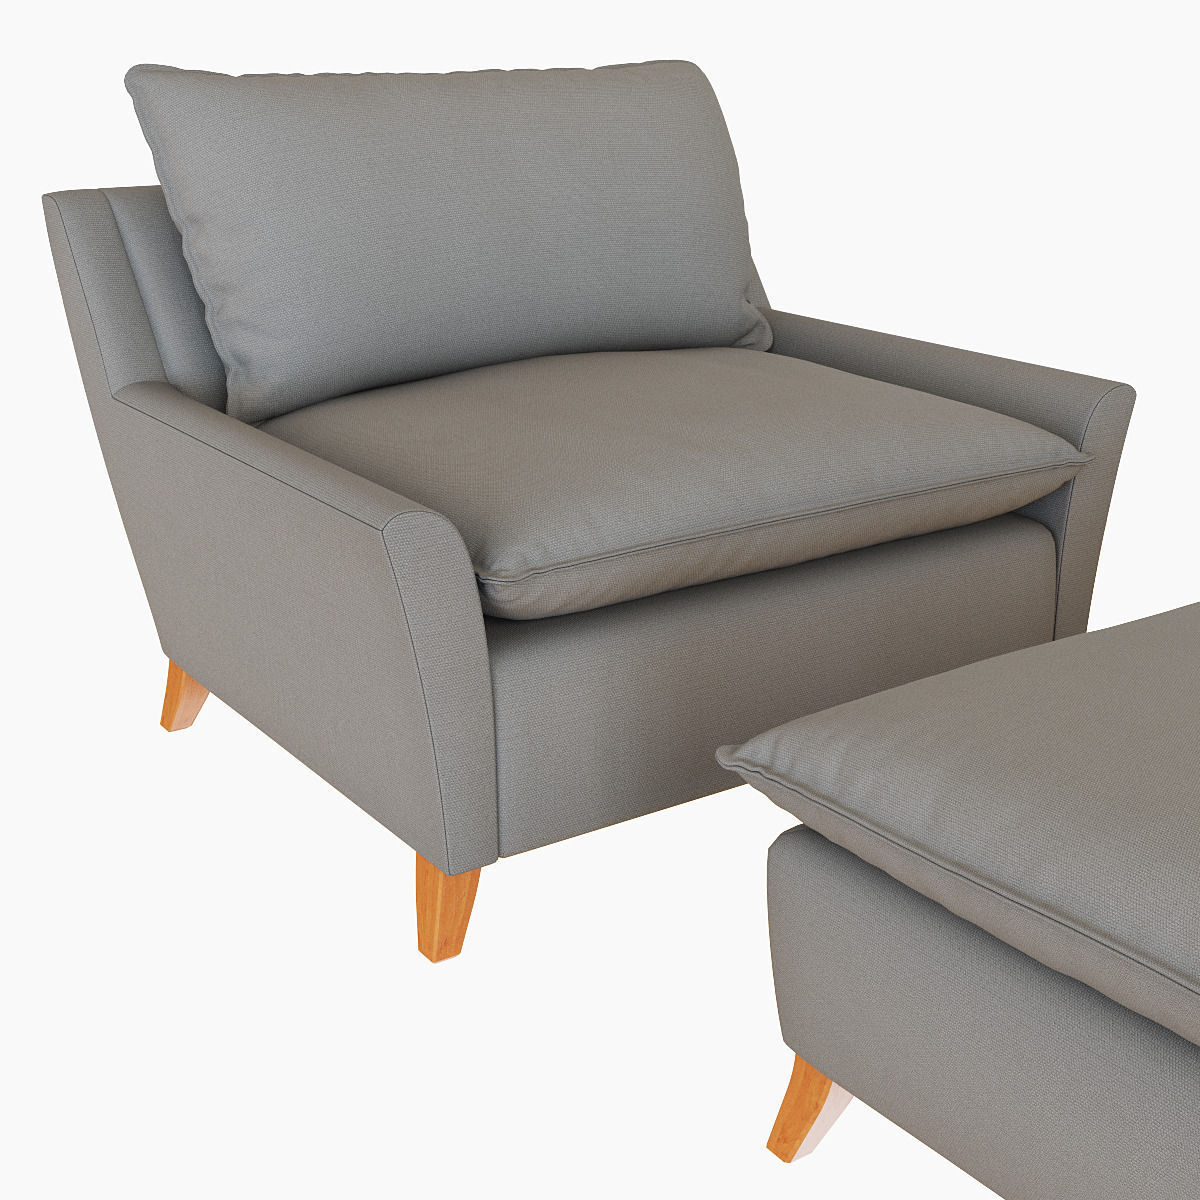 west elm bliss down-filled chair-and-a-half 3d model max obj fbx mtl